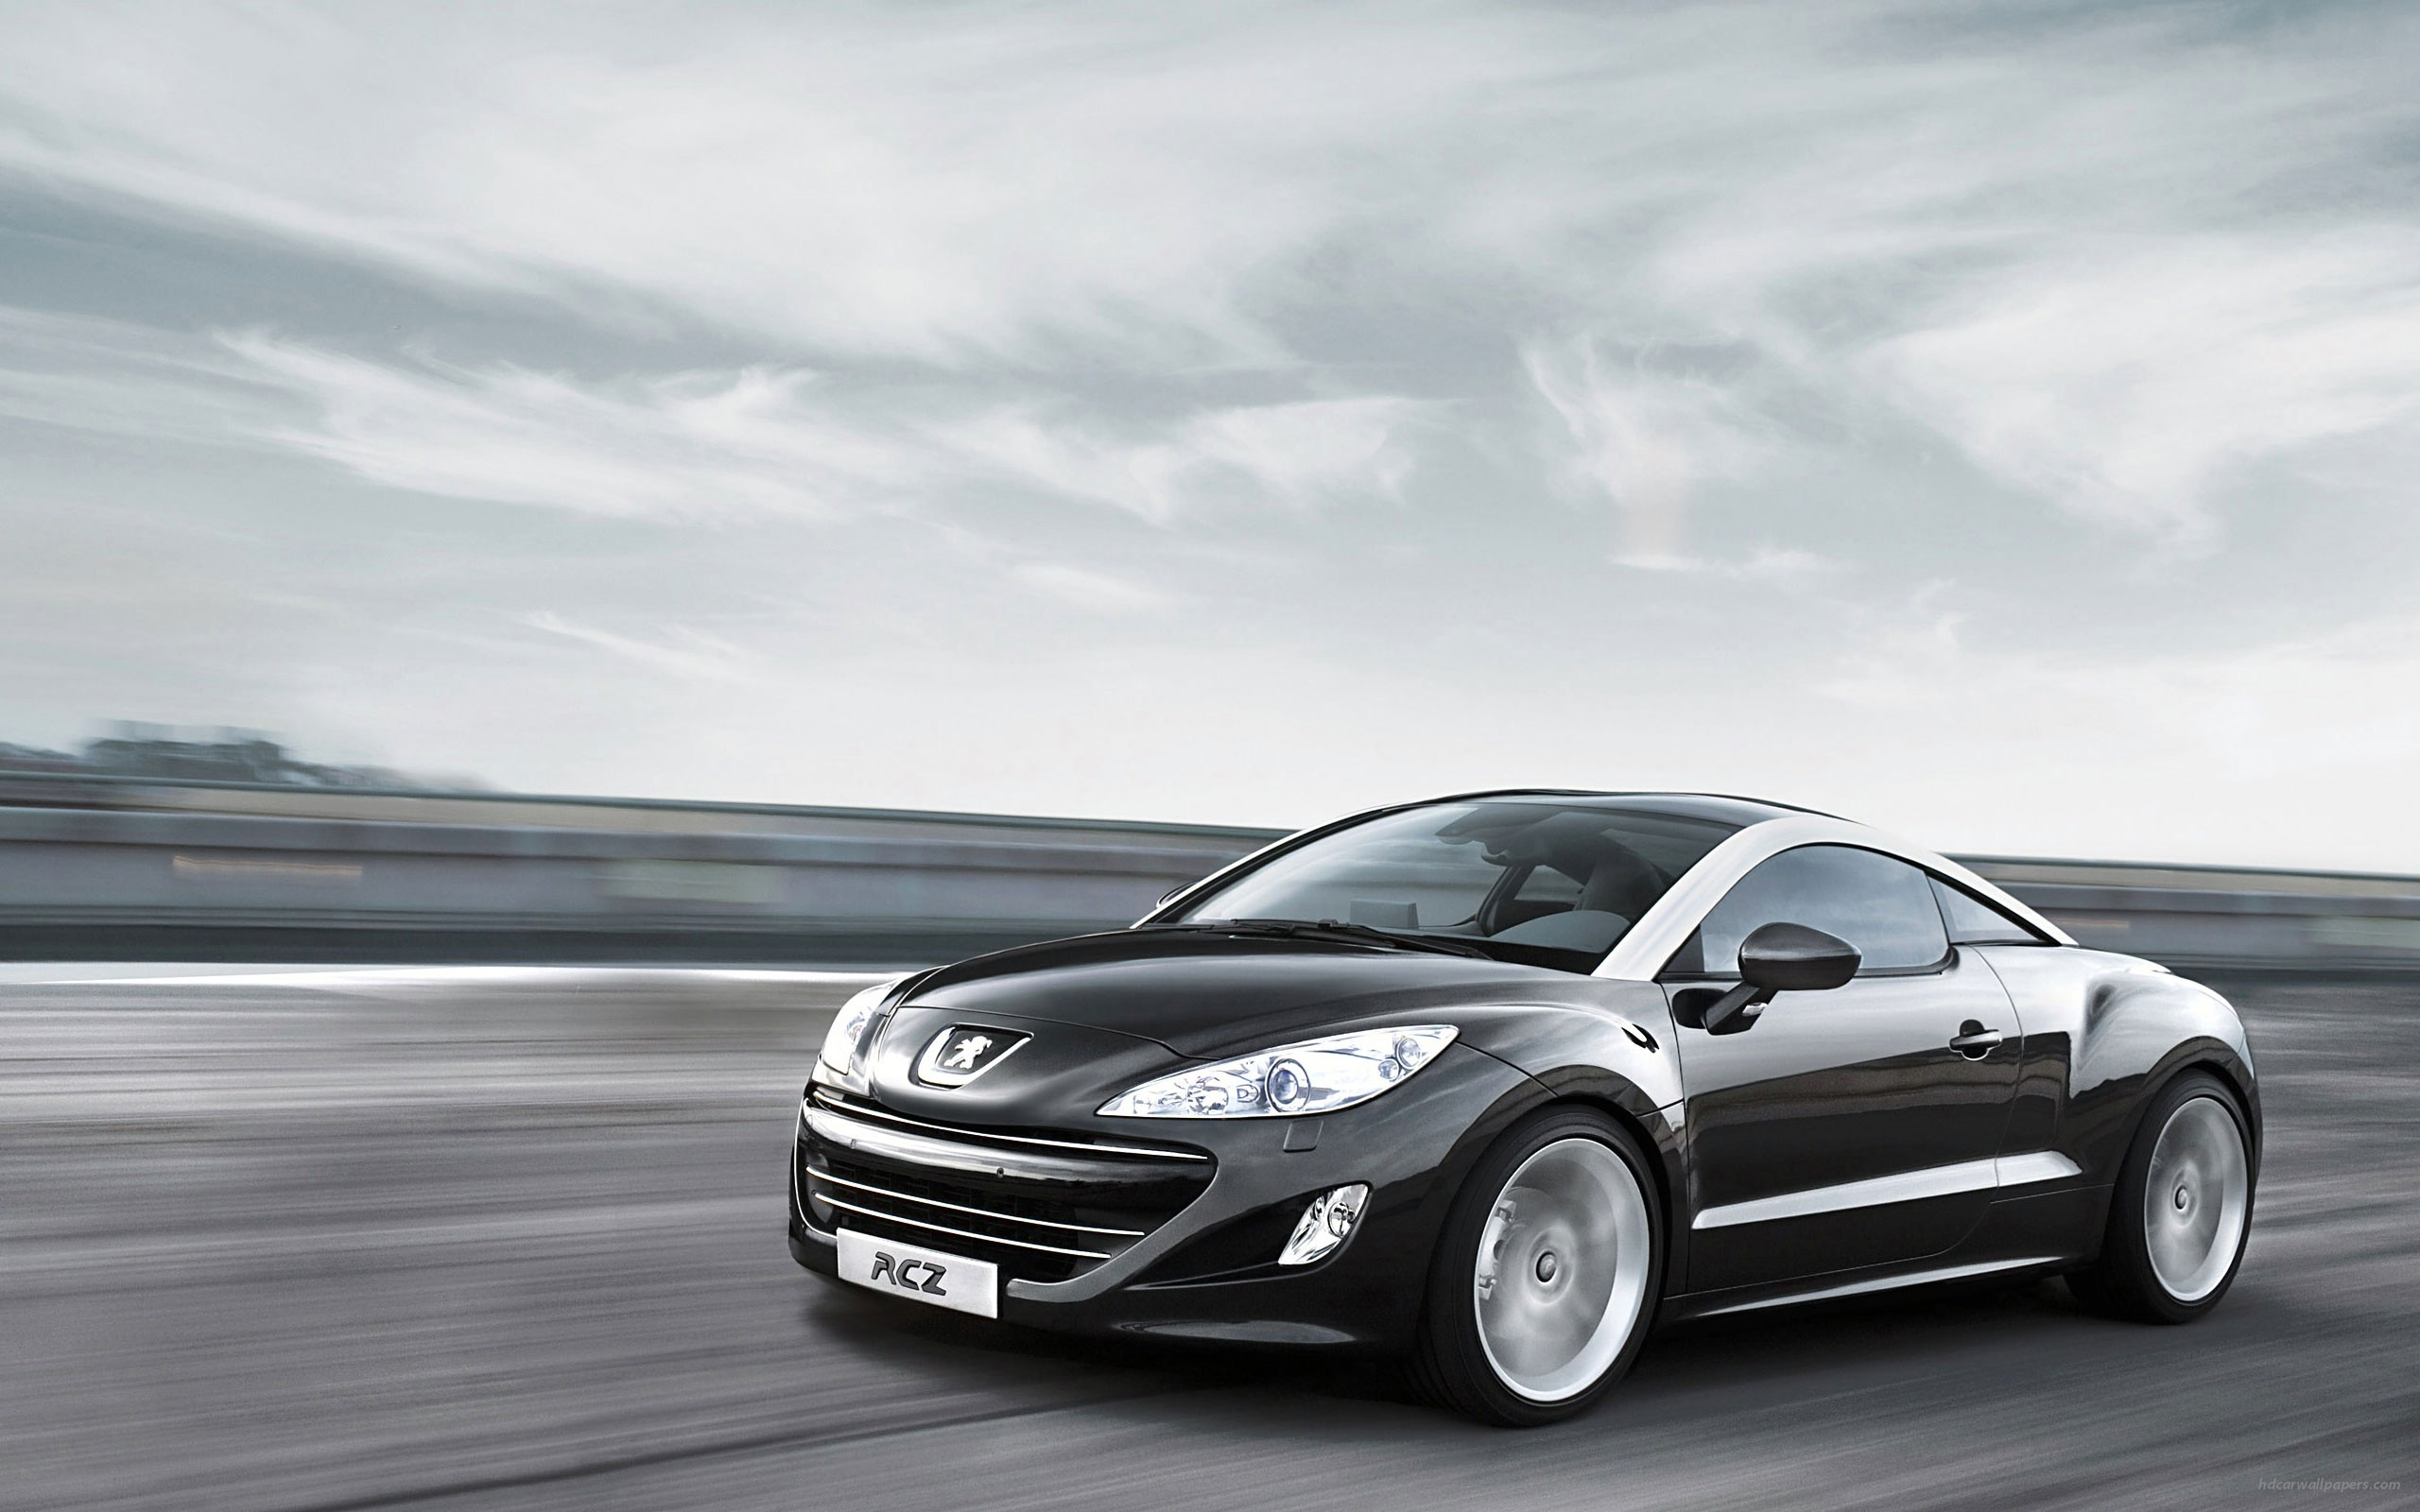 peugeot rcz 2010 wallpaper #8